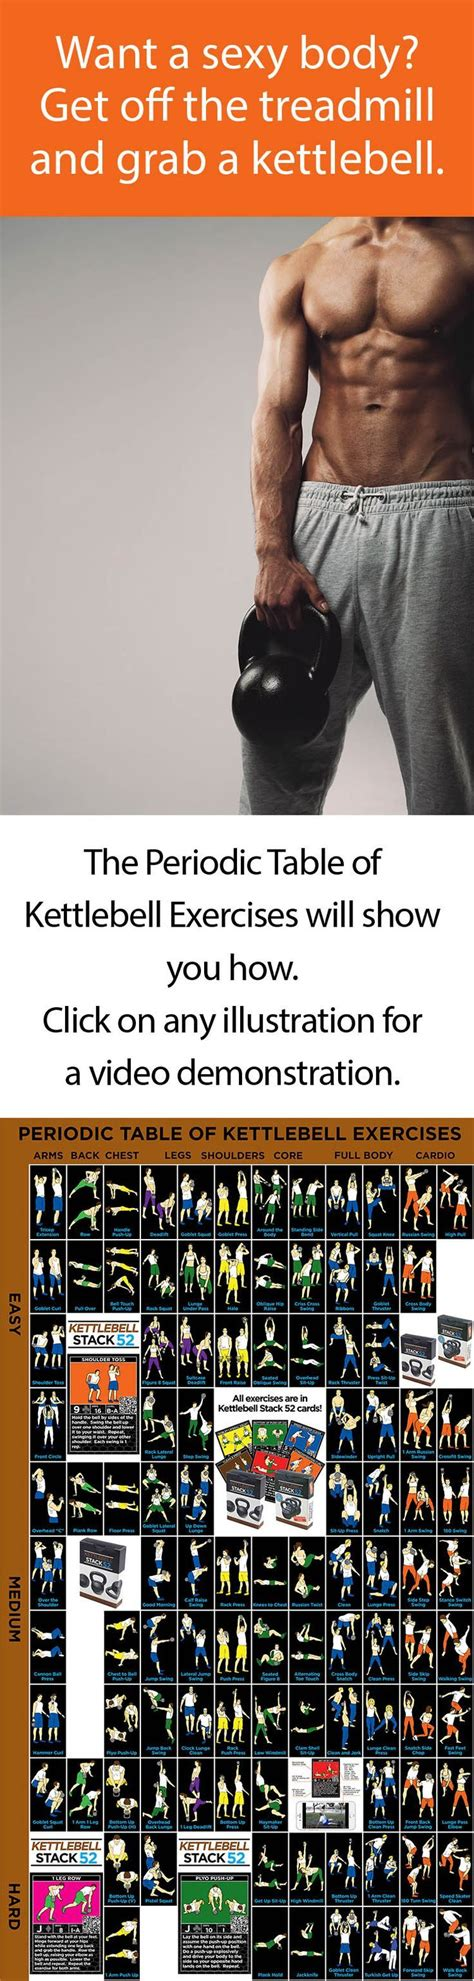 kettlebell exercises workout fitness workouts table periodic gym health muscle exercise strength stack52 training weight kettle mens cardio work body